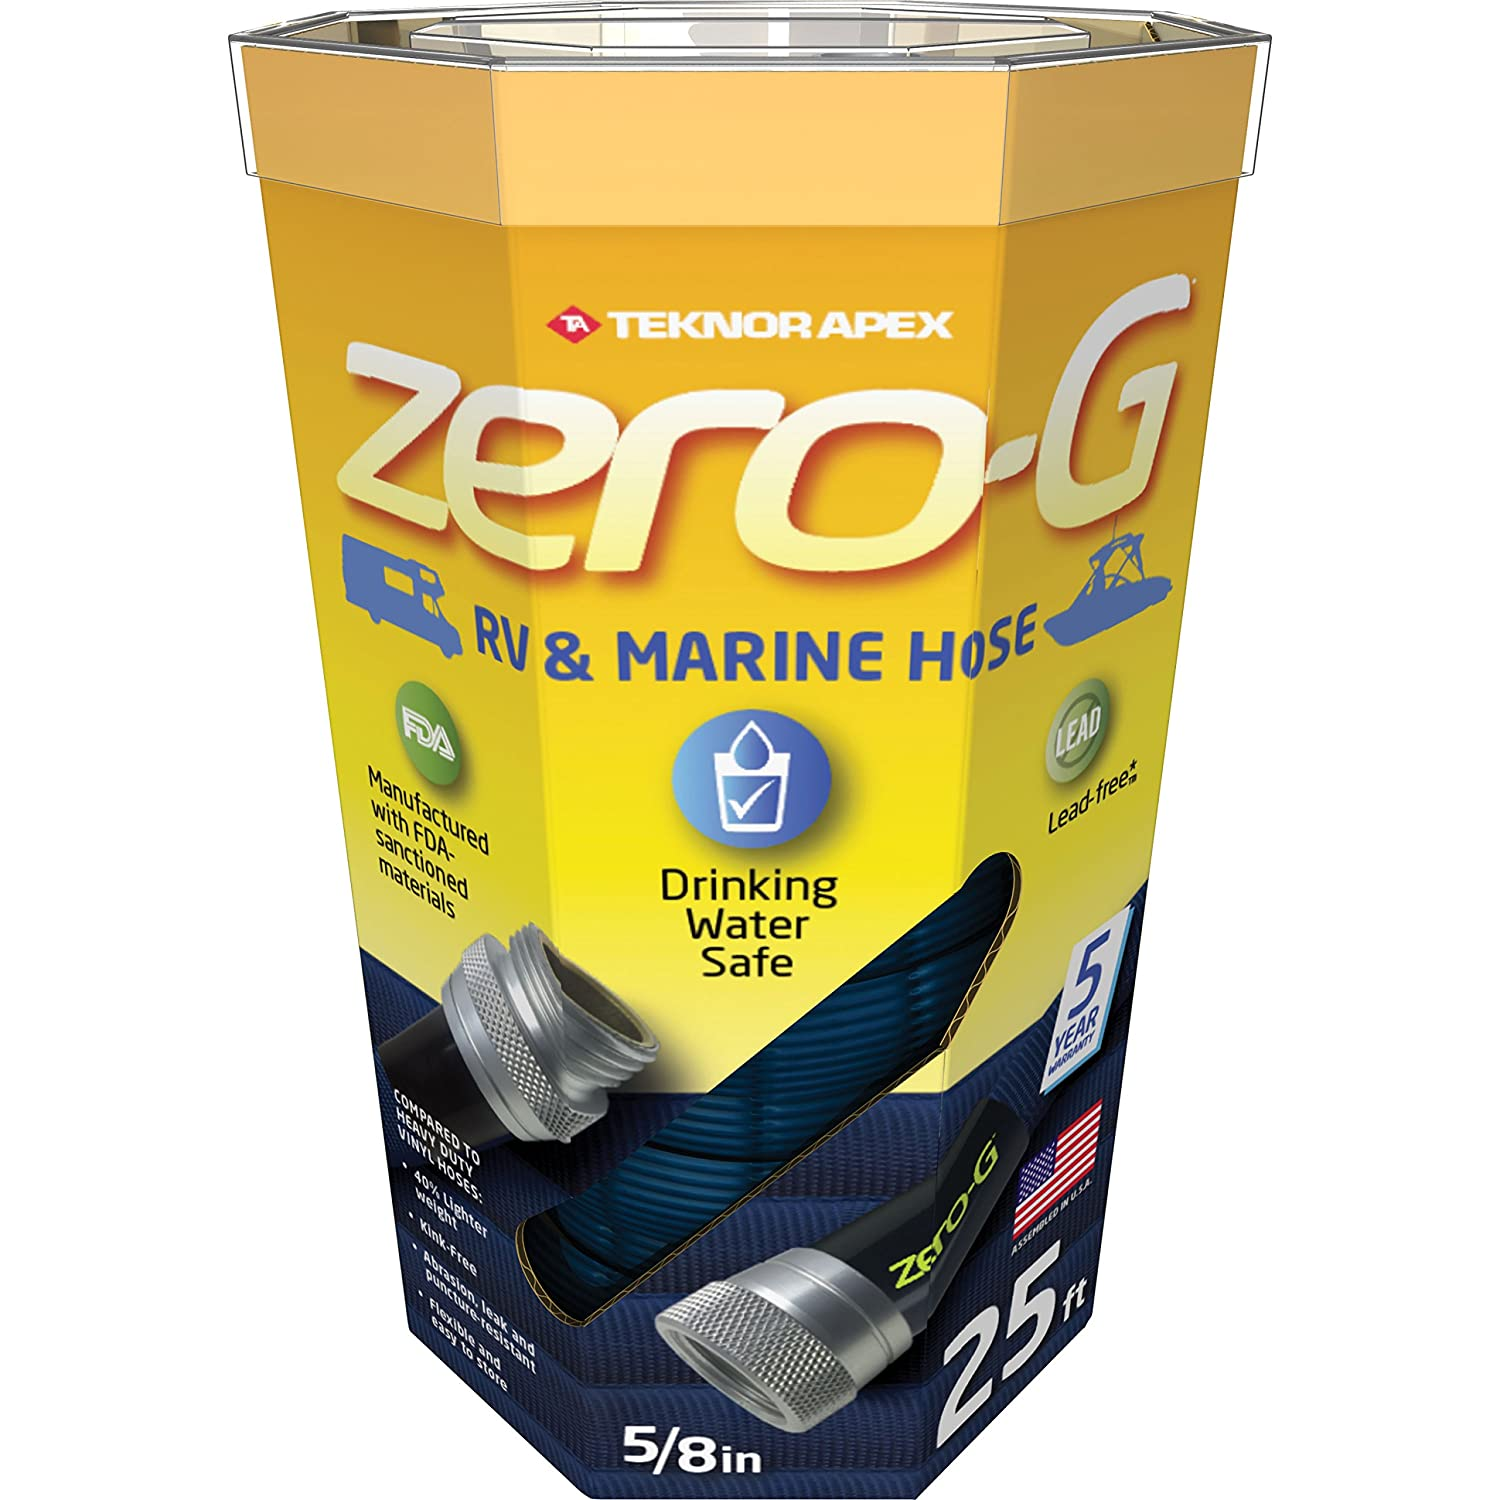 Teknor Apex Zero-G Hose A rare Drinking water approved collapsable hose – we use these RV/Marine hoses to fill our fresh water tanks and scrub the decks. Super easy to store.